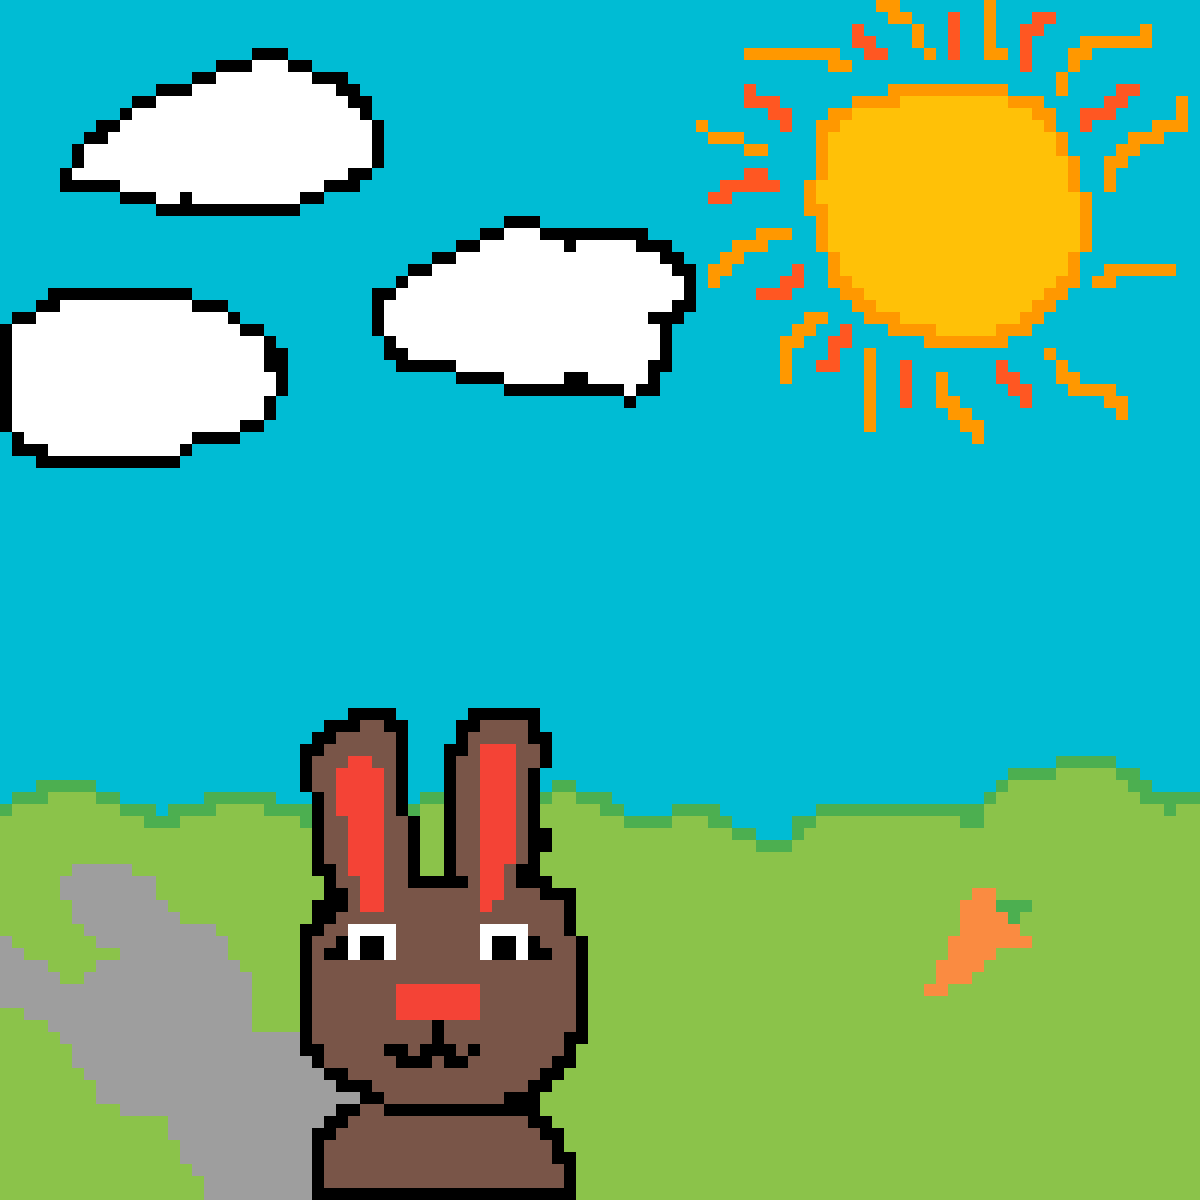 Pixilart Pixelart Lapin Sabrina Carrillo Brito By Anonymous